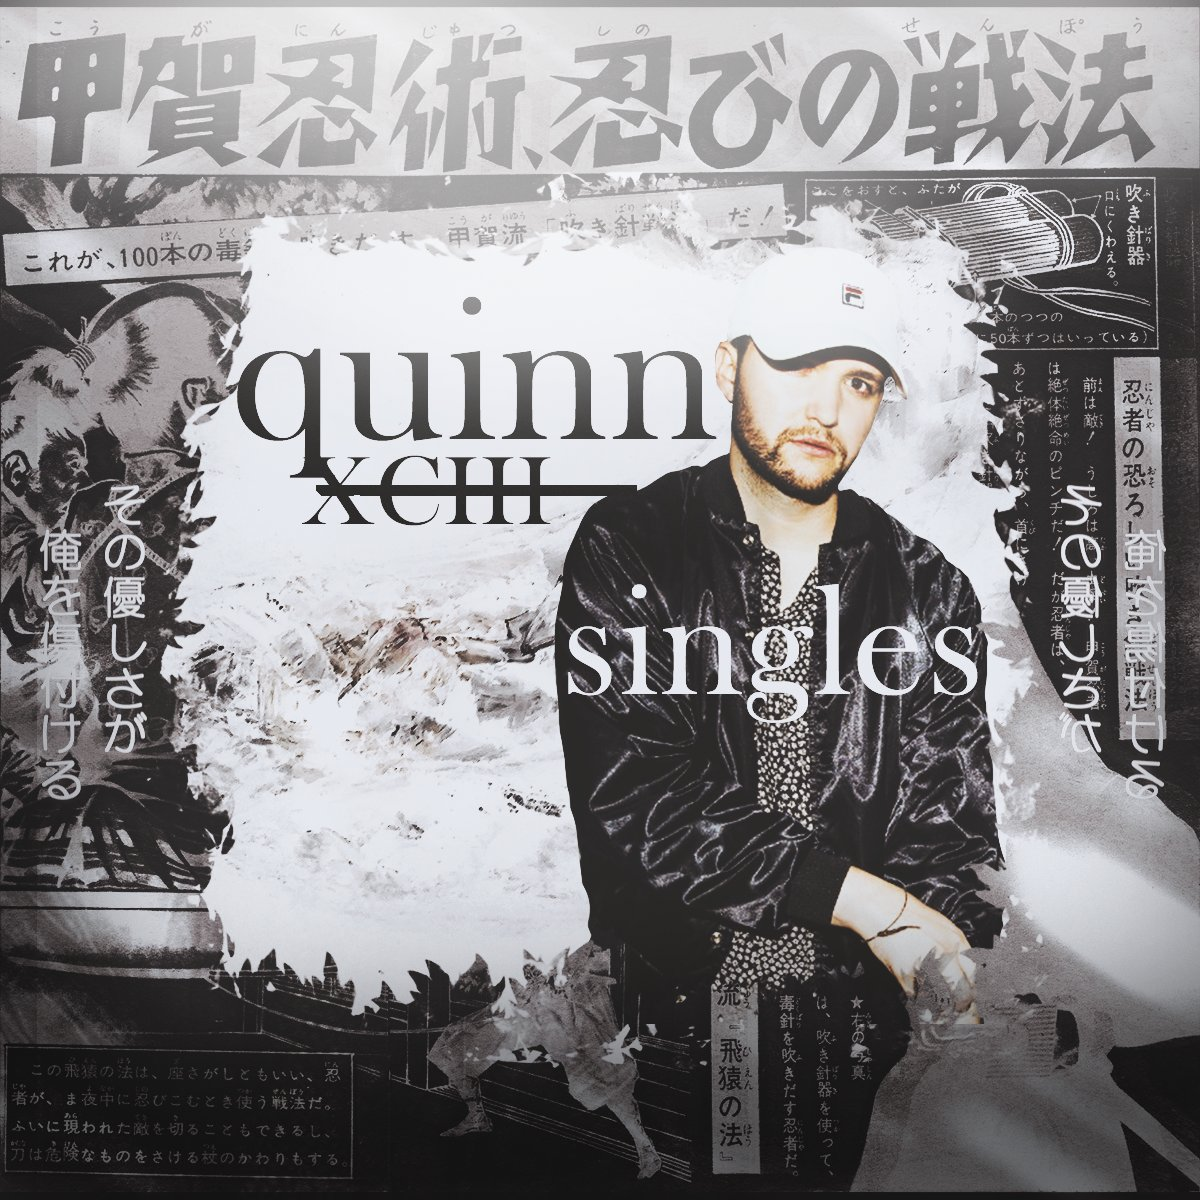 - Cover art x @QuinnXCII -   #RT+ #LIKE would be dope! <br>http://pic.twitter.com/bcM350GM0W